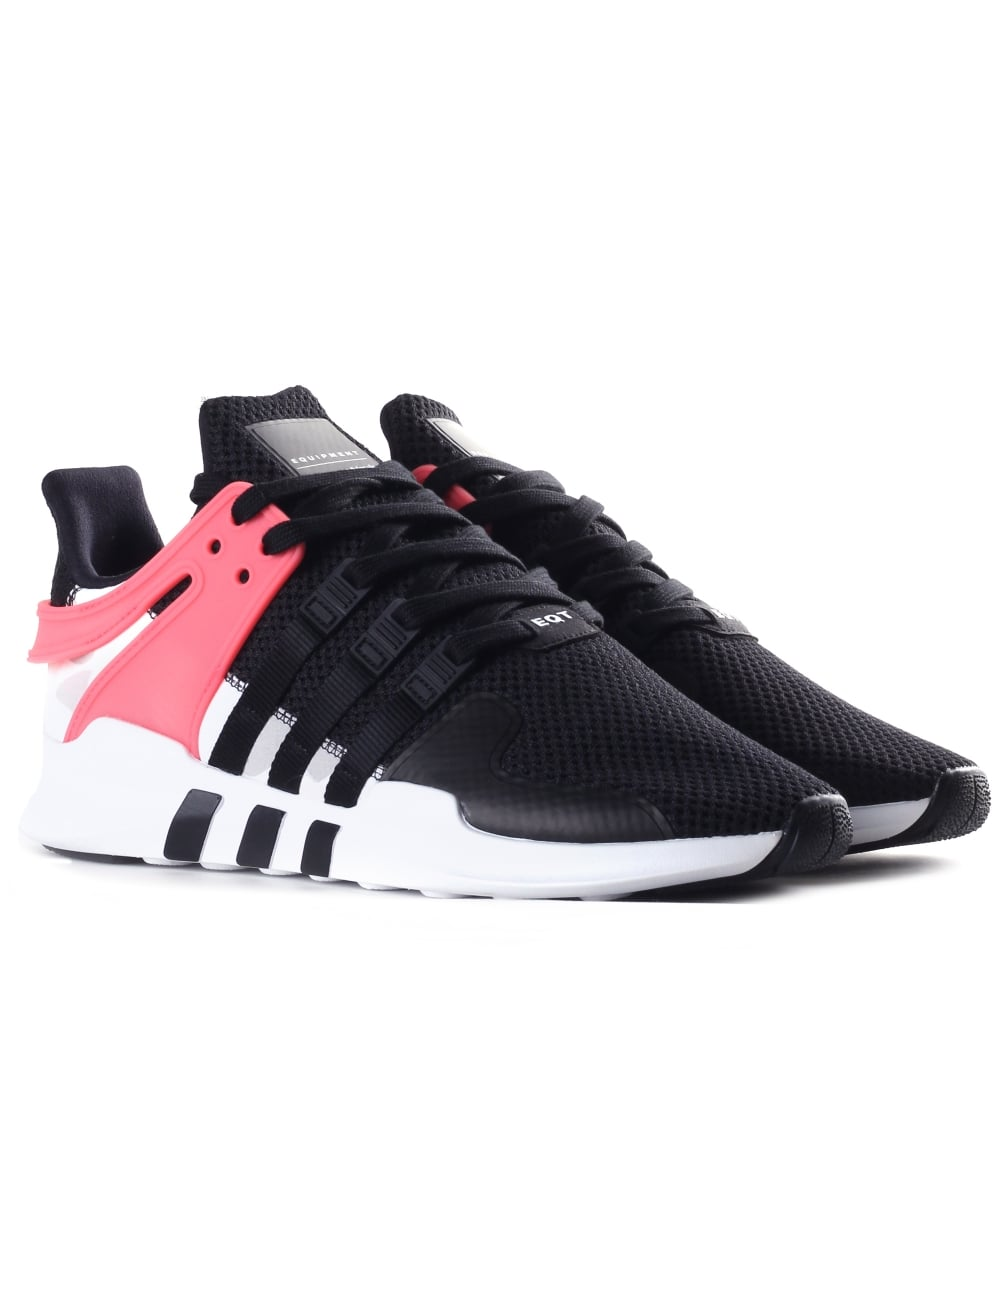 meet df1bf e760f Adidas Men's Eqt Support Adv Trainer